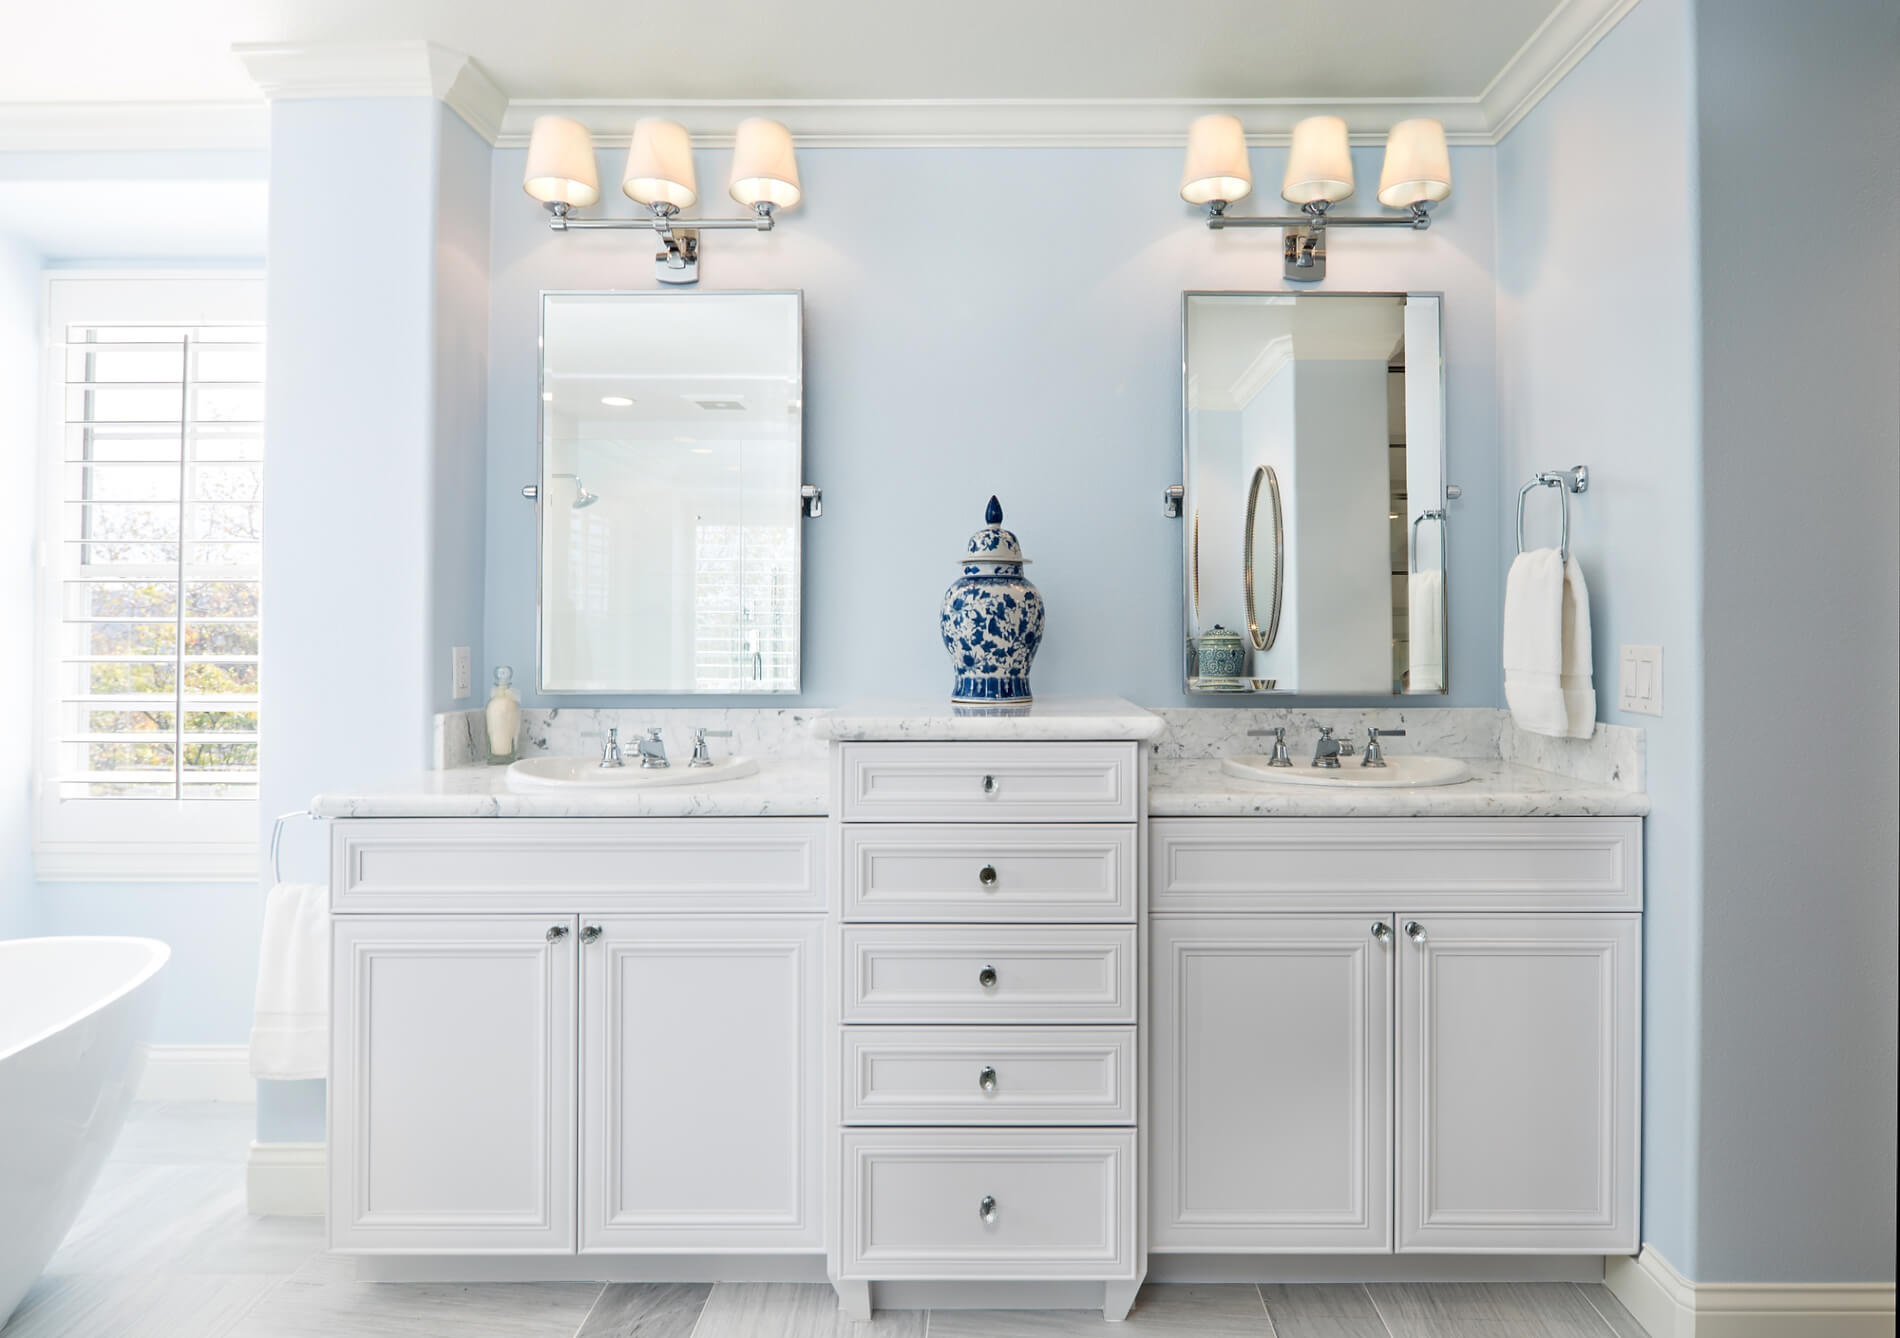 Bathroom Remodeling Contractors Irvine, Bathroom Remodeling Contractors Orange County, Bathroom Remodeling Services Dove Canyon